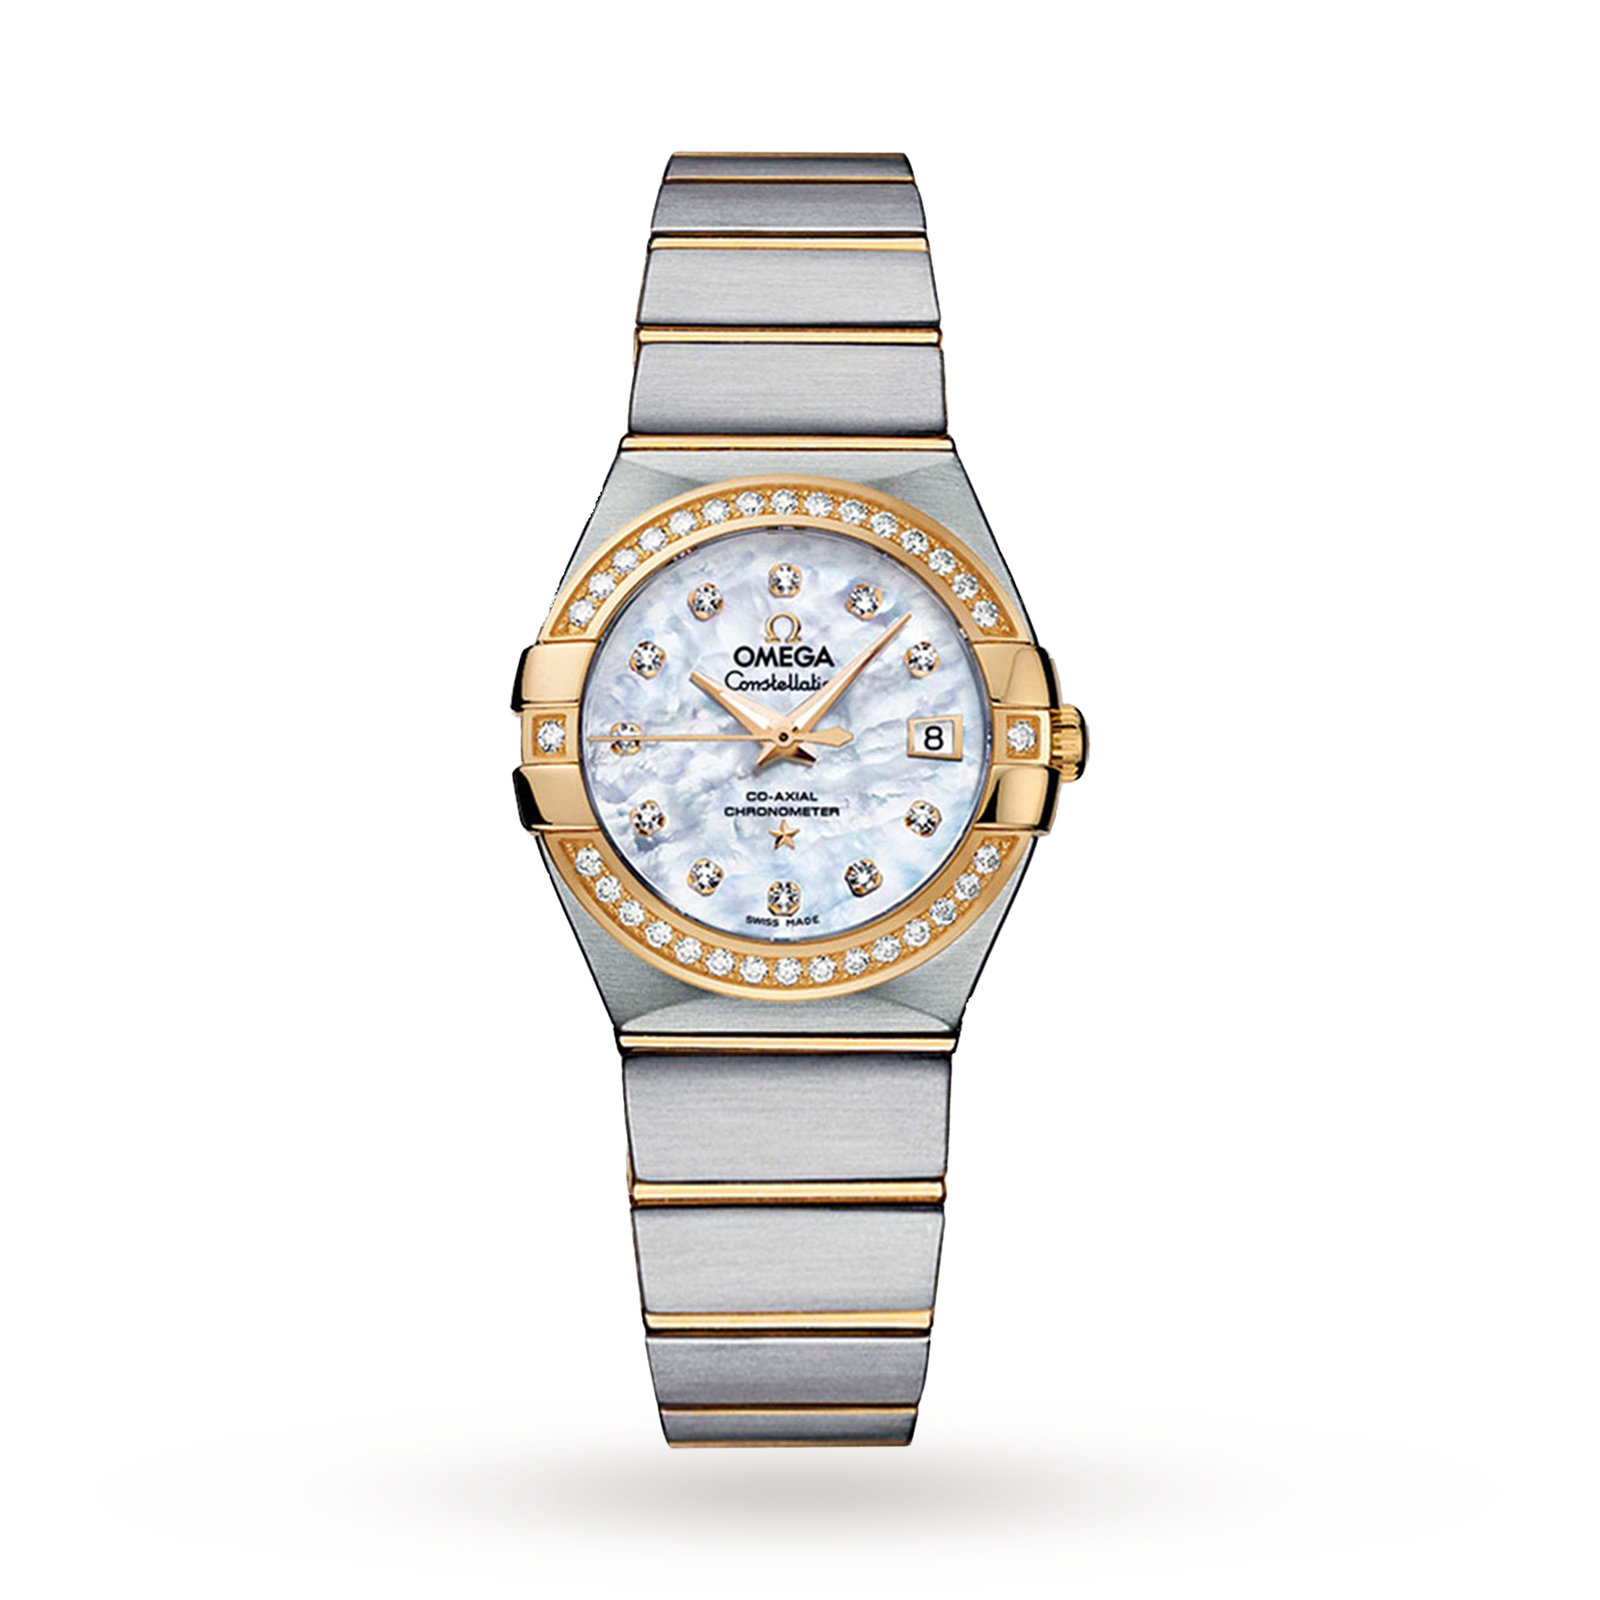 Omega Watches Most Expensive